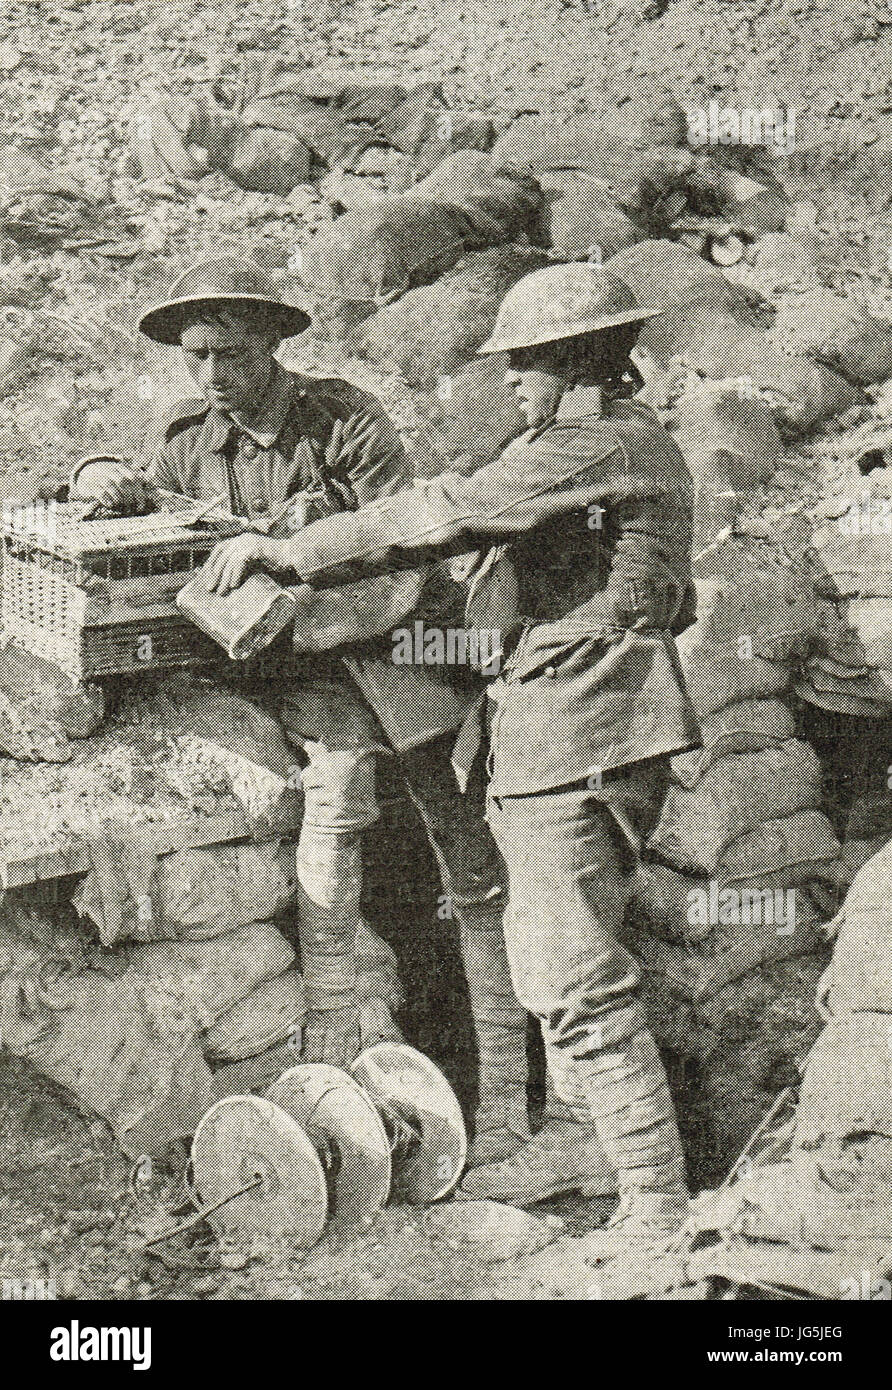 Soldiers giving water to their Carrier Pigeons - Stock Image